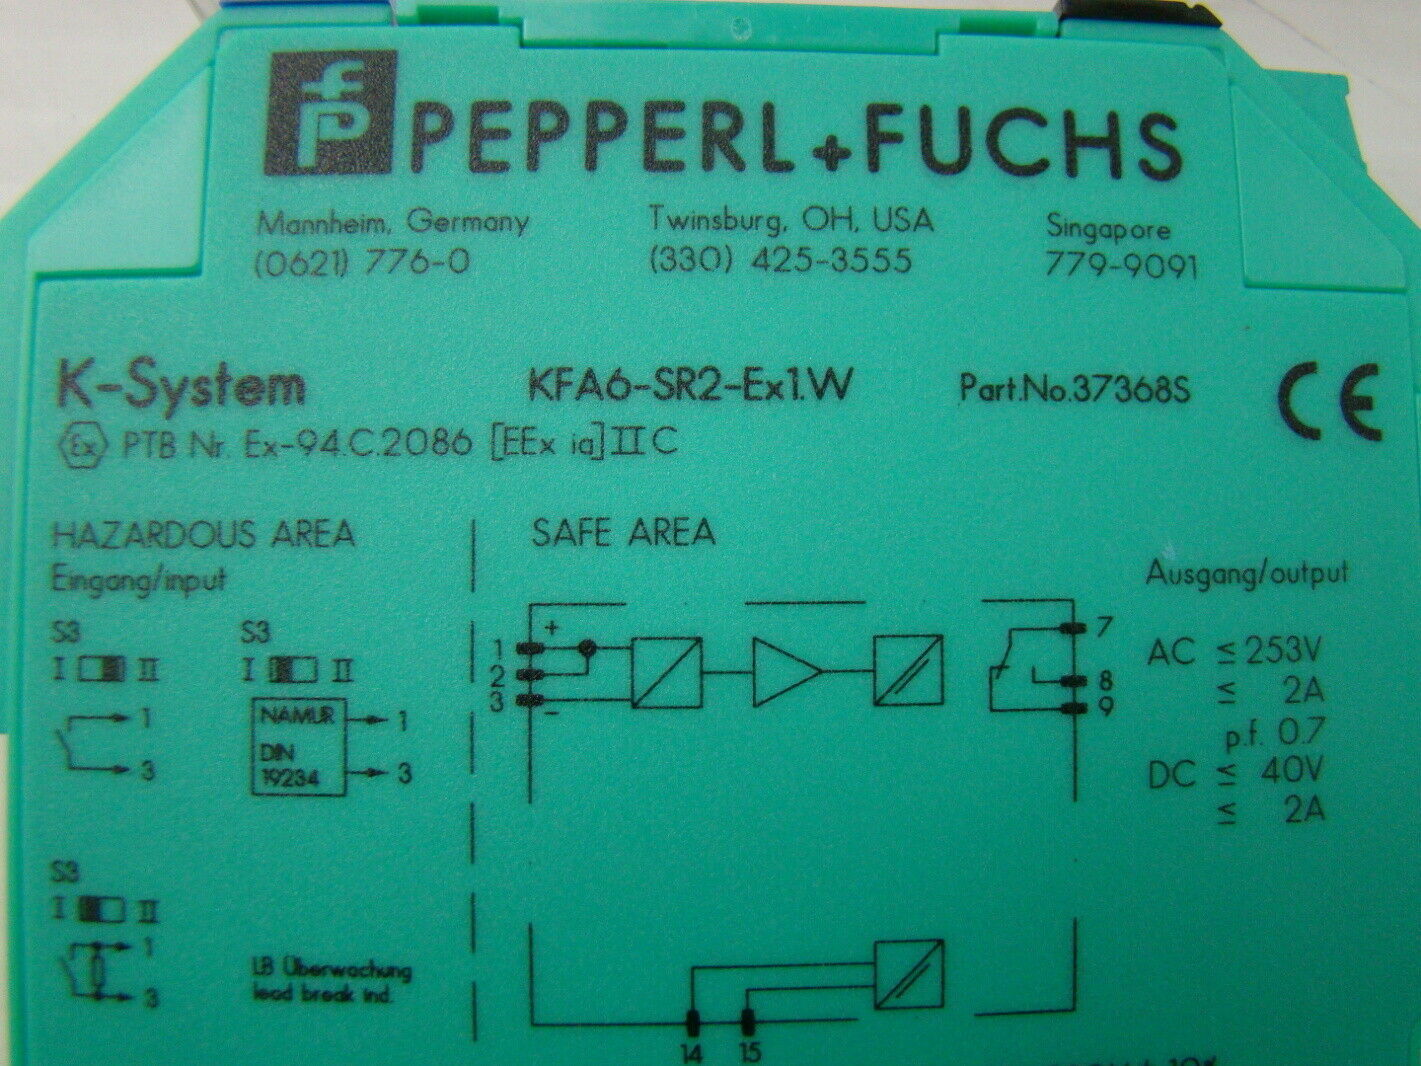 jf07188 pepperl fuchs isolated switch amplifier kfa6 sr2 ex1w 10 pepperl fuchs isolated switch amplifier kfa6 sr2 ex1 w ebay kfd2-sr2-ex1.w wiring diagram at love-stories.co